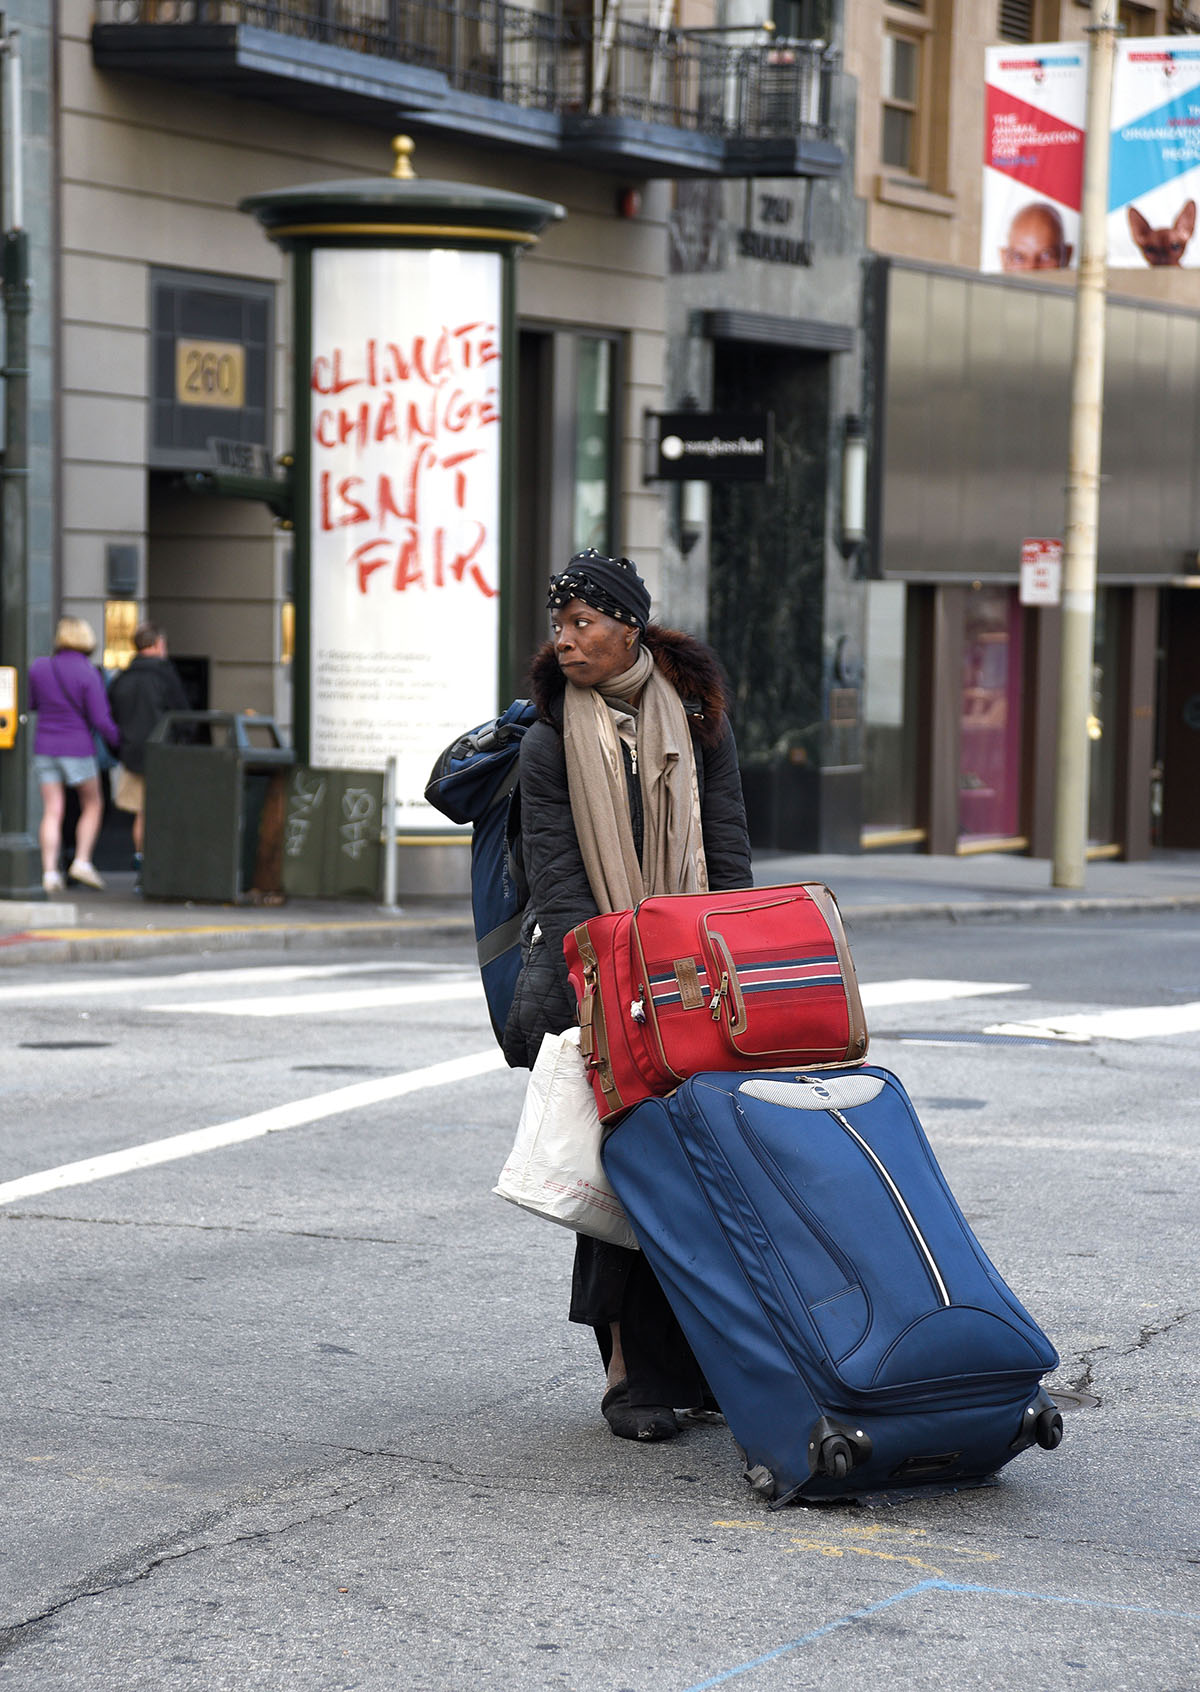 SAN FRANCISCO, CALIFORNIA - SEPTEMBER 12, 2018: A woman drags her possessions packed into suitcases and a backpack across a busy intersection in San Francisco, California. (Photo by Robert Alexander/Getty Images)